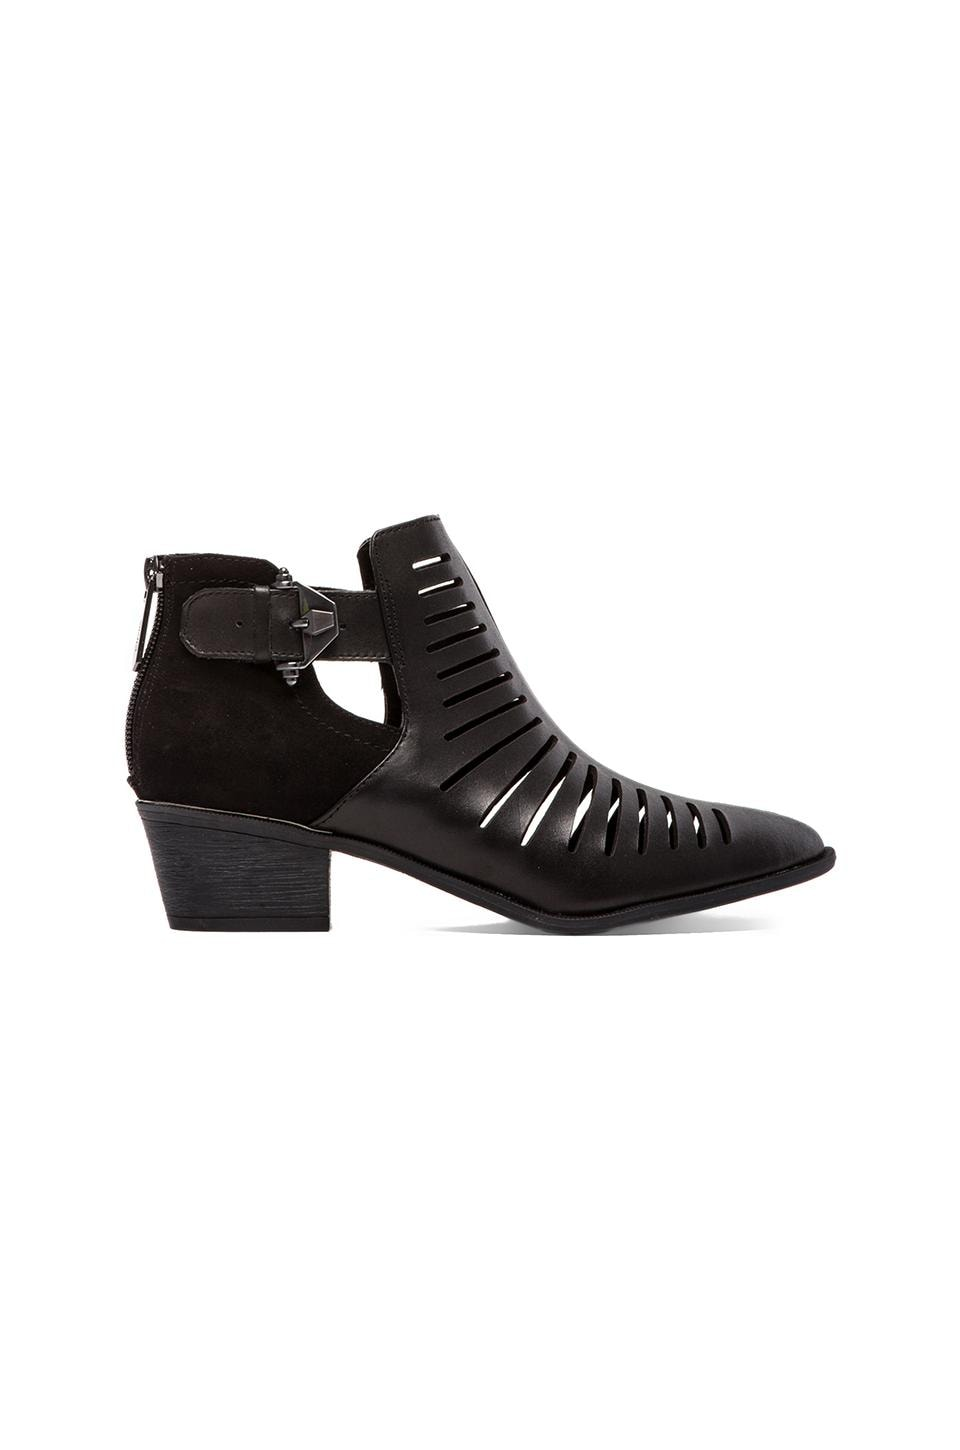 Circus by Sam Edelman Hayden Bootie in Black